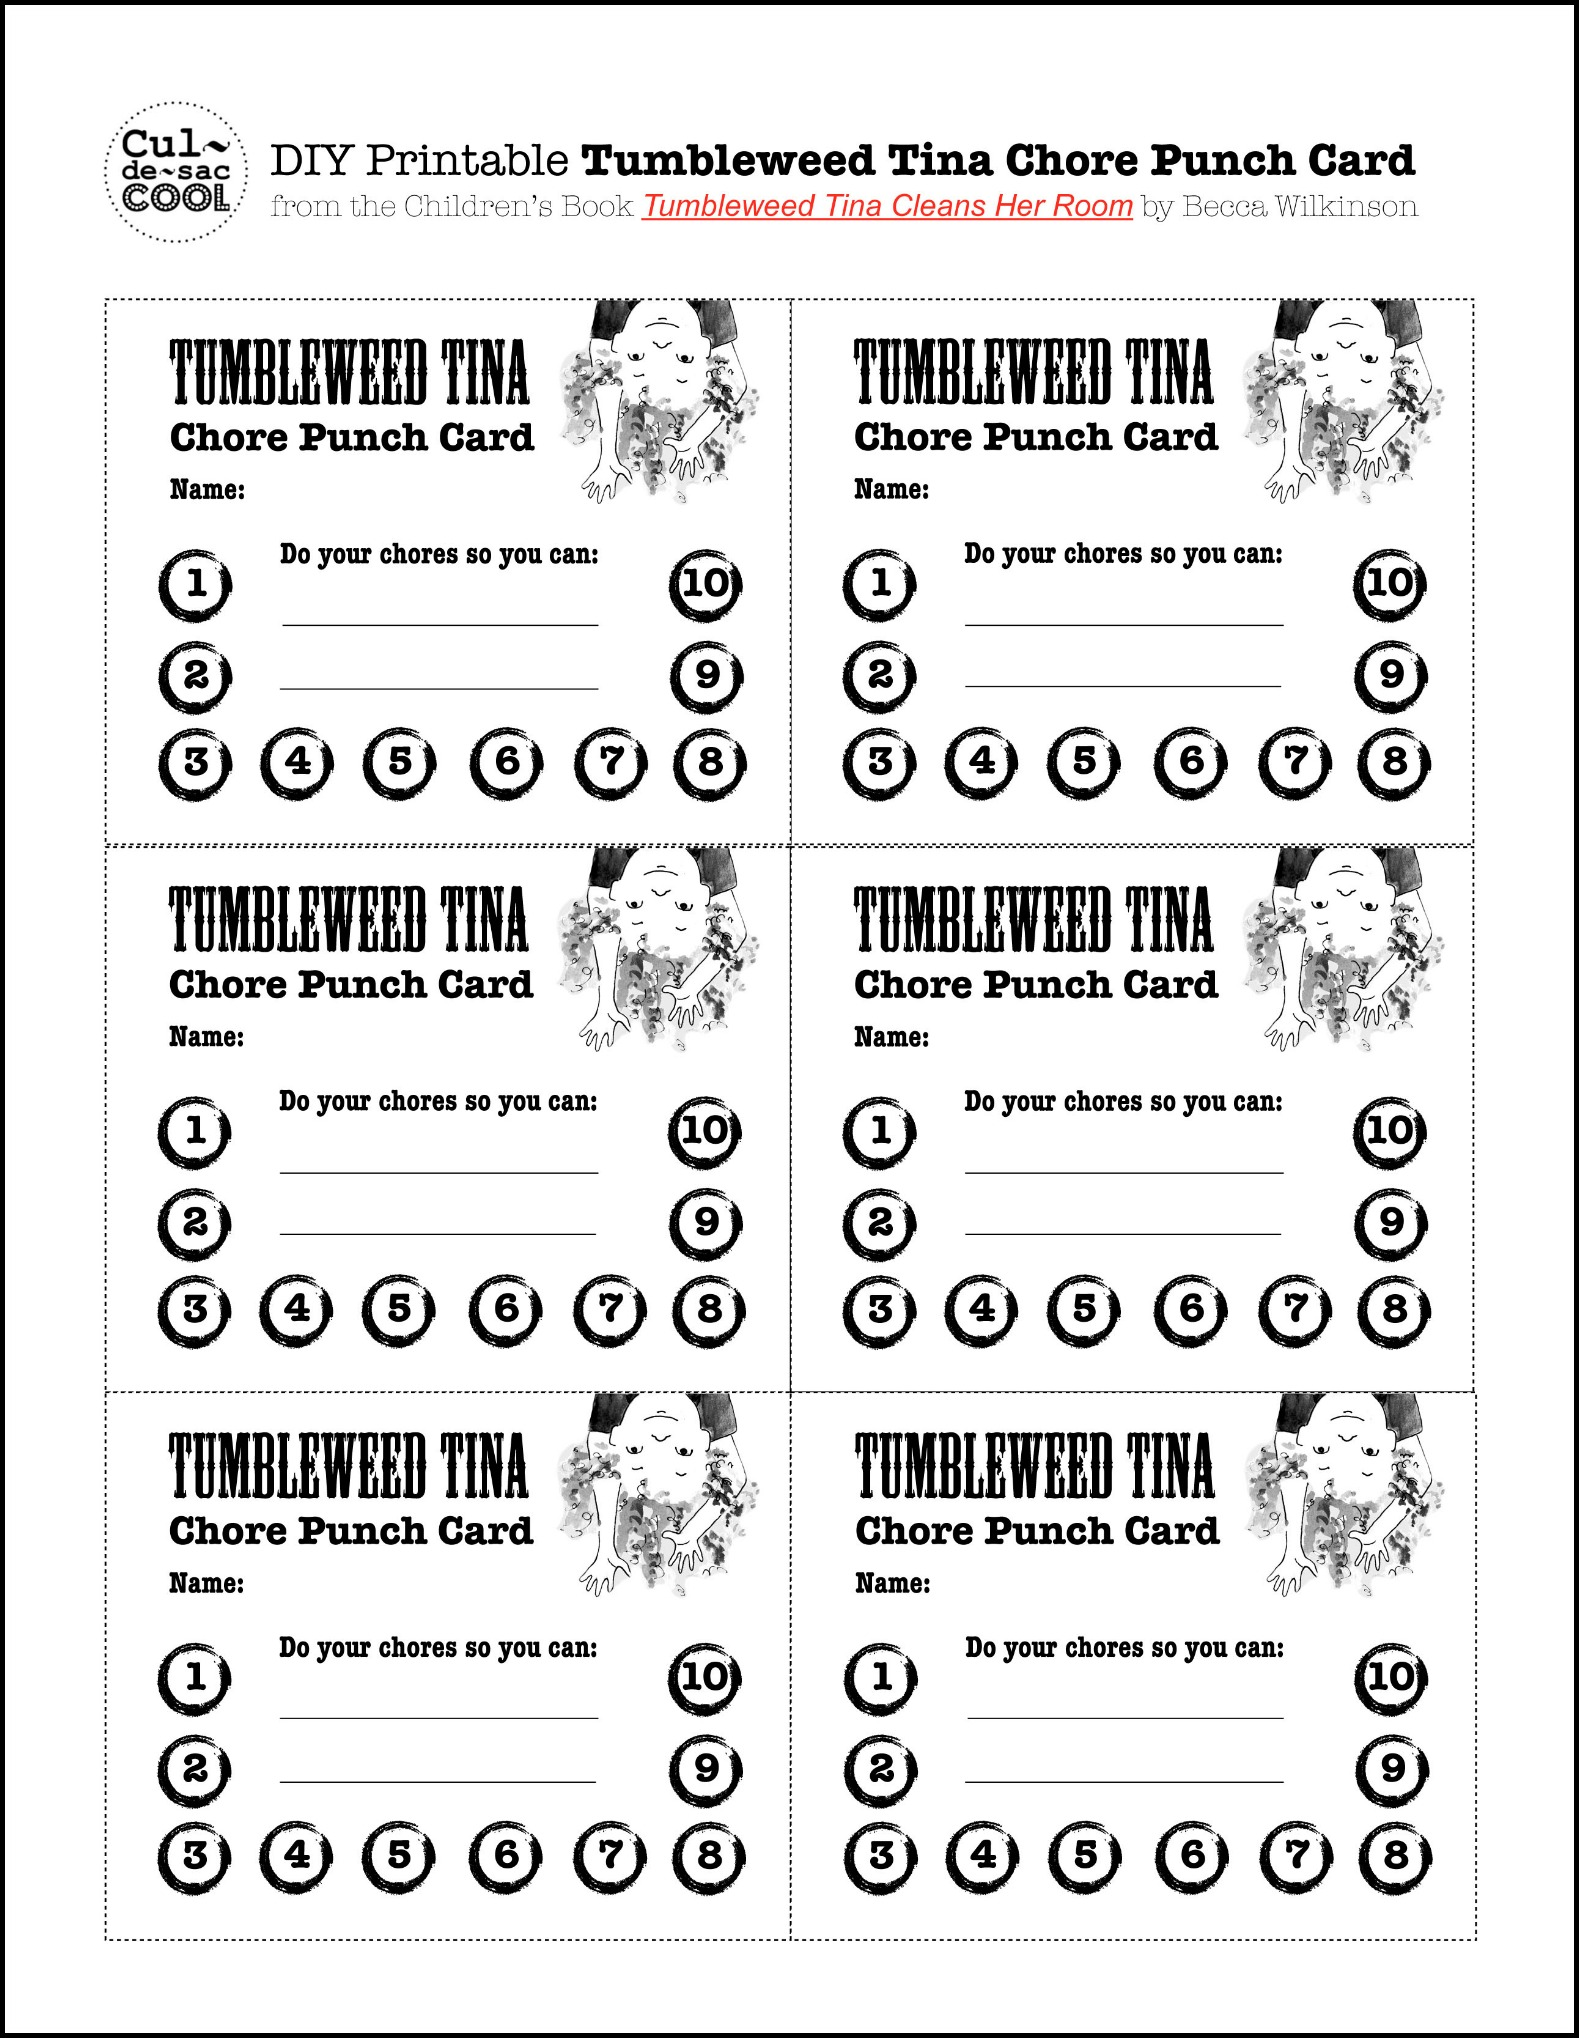 DIY Printable Tumbleweed Tina Chore Punch Card from the Children's Book Tumbleweed Tina Cleans Her Room by Children's Book Aurthor Becca Wilkinson